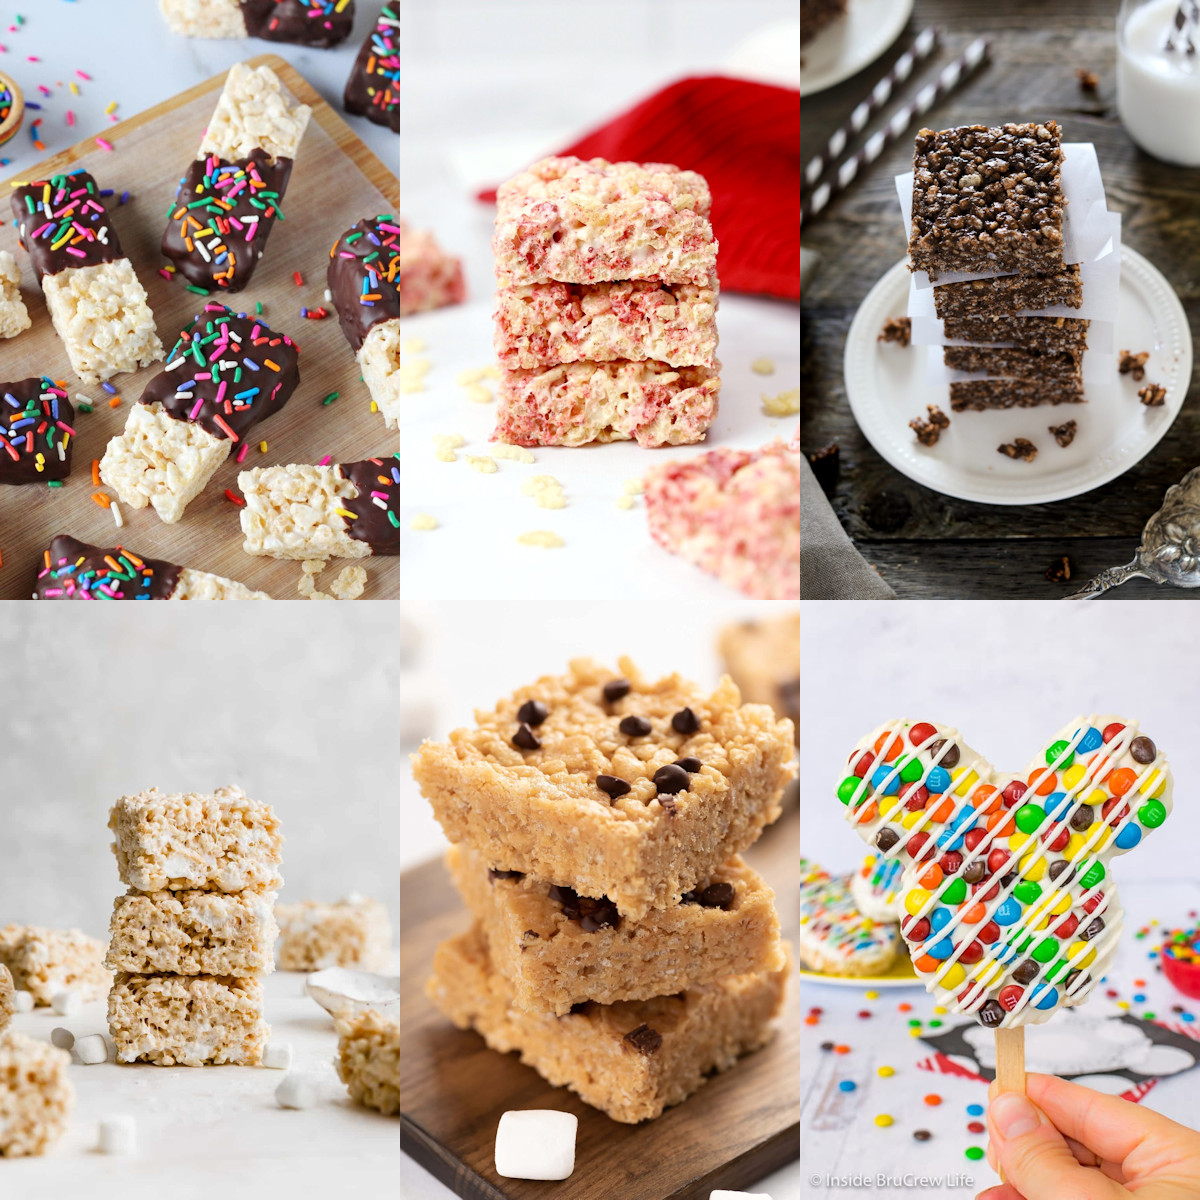 A collage of different flavors of rice krispies treats.